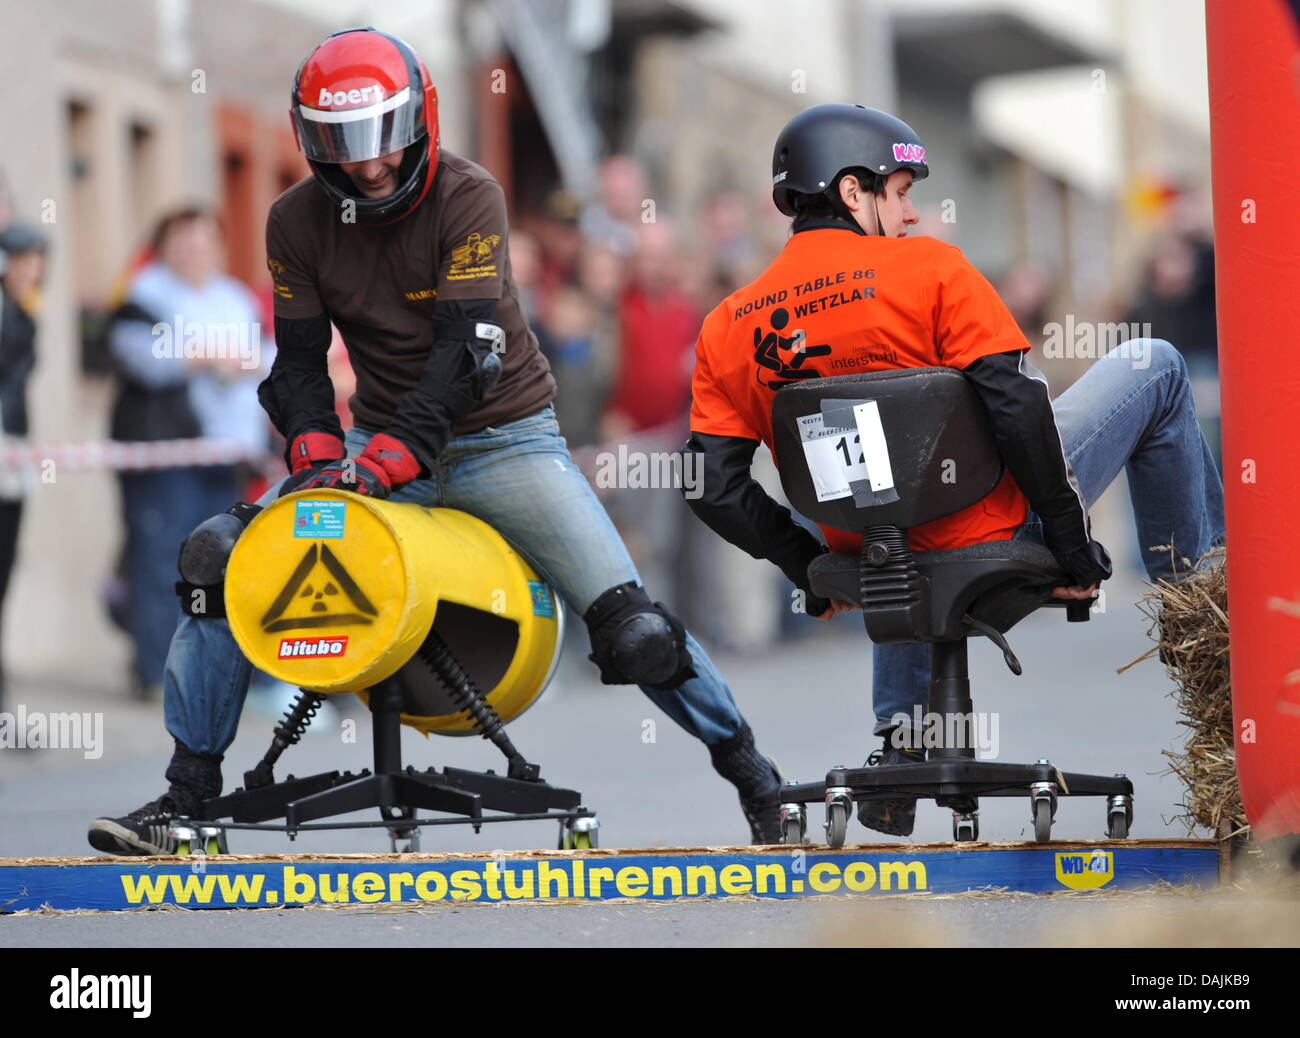 german office chairs. Two Participants Race Their Chairs At The 3rd German Championships In Office Chair Racing Bad Koenig-Zell, Germany, 16 April 2011.